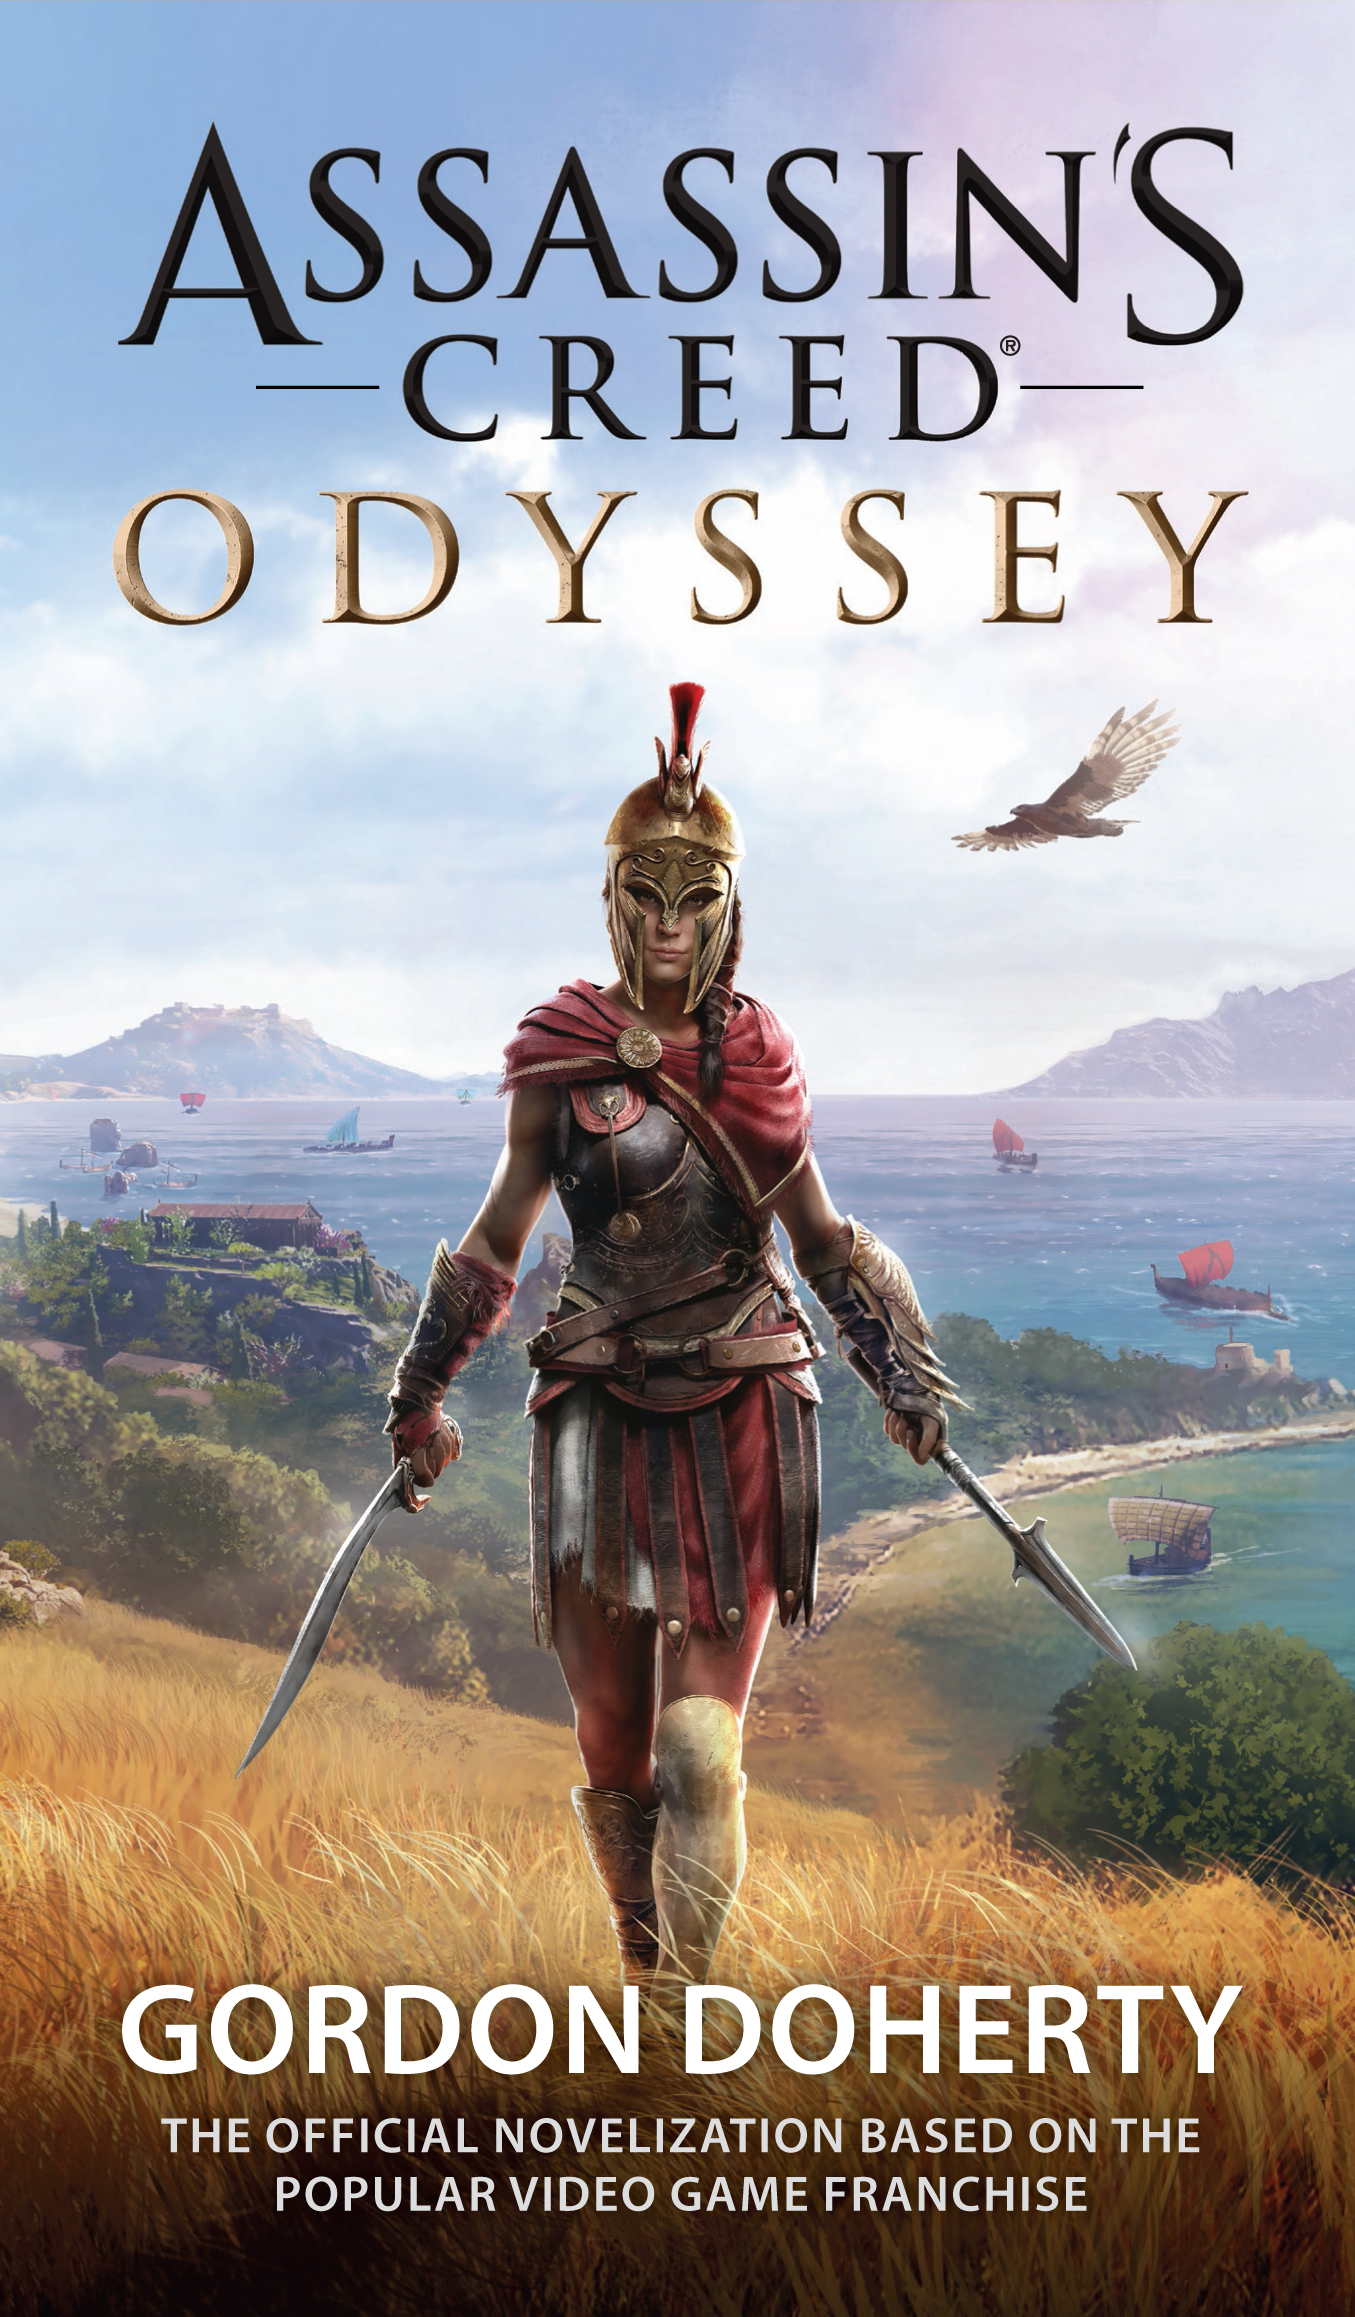 Codex Assassin S Creed Odyssey Novel Cover Art Revealed